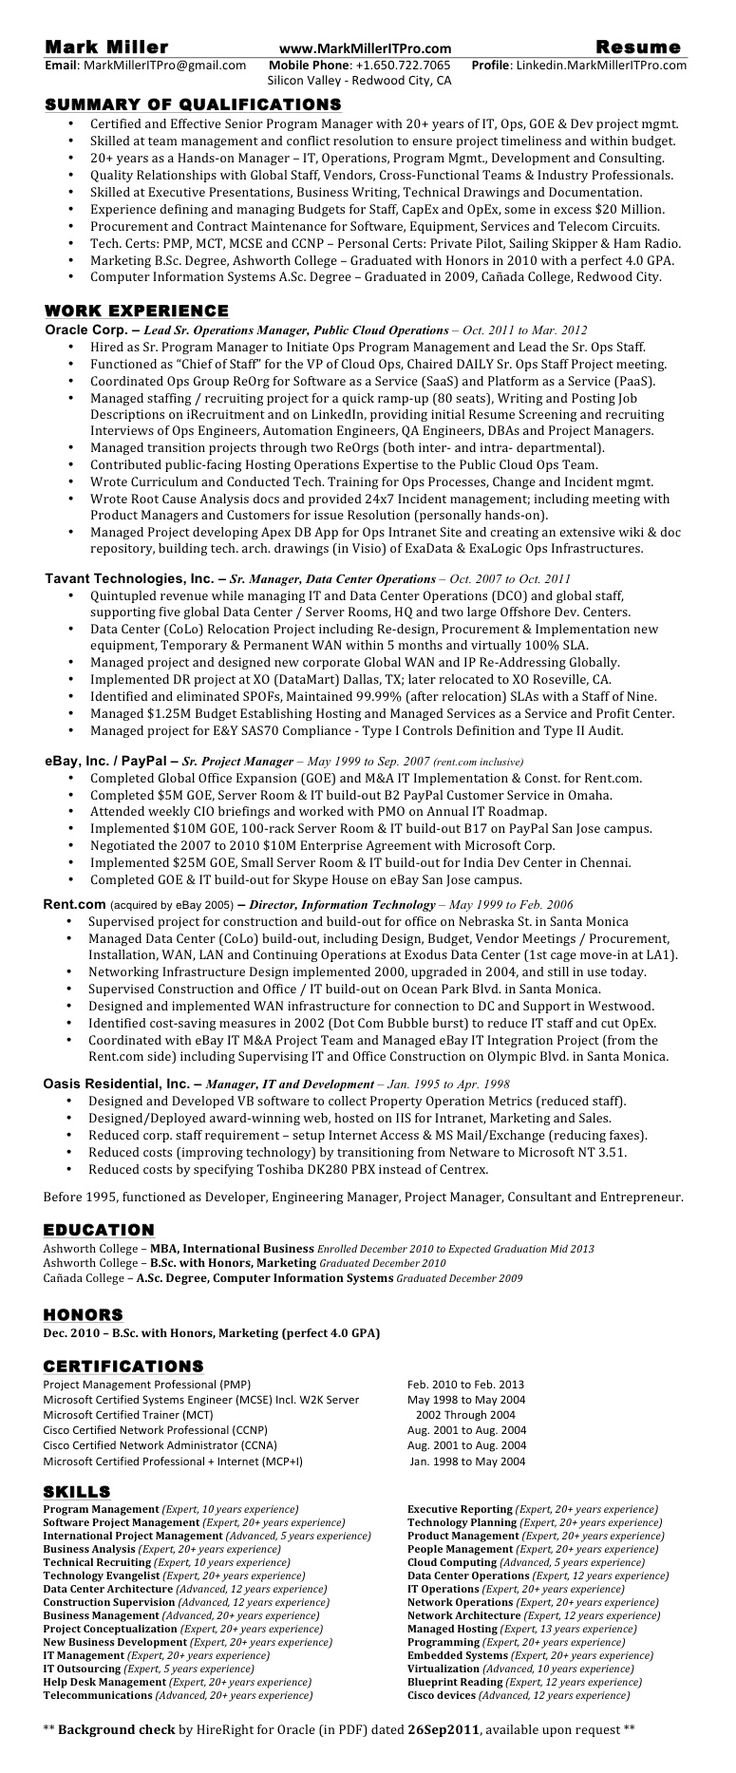 My Project Management resume.